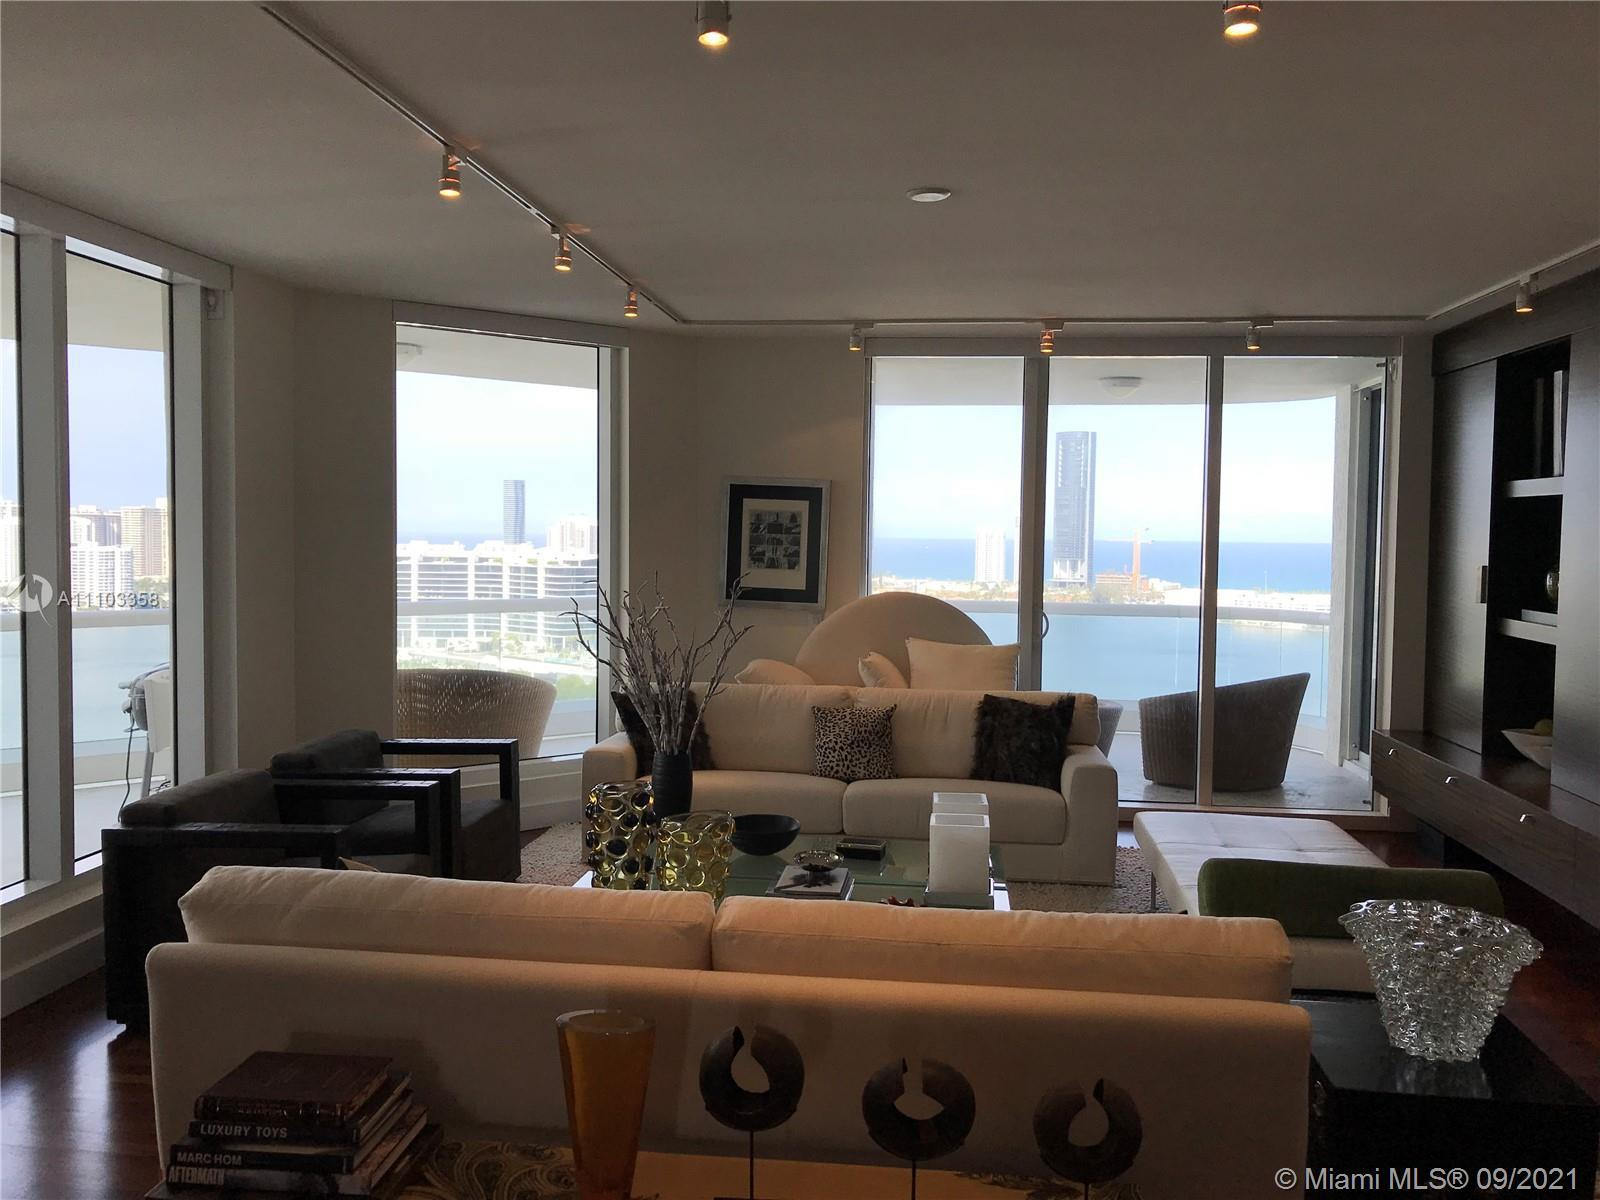 Corner apartment with 4 bedrooms 5 1/2 baths, spacious living at its finest.  All amenities for Will